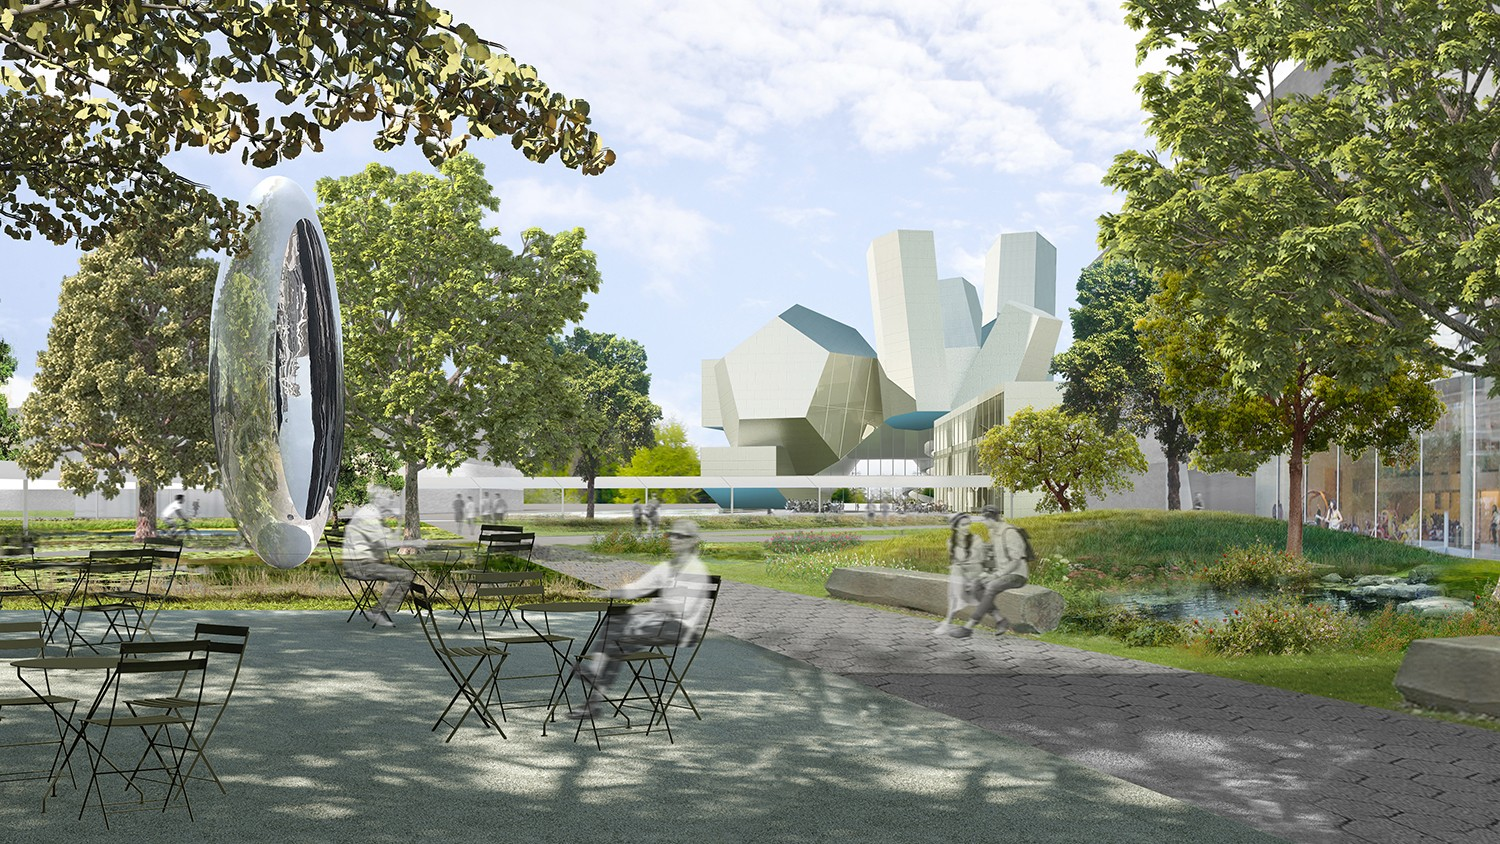 https://stevenholl.sfo2.digitaloceanspaces.com/uploads/projects/project-images/StevenHollARchitects_UCD-MASTERPLANENTRYQUADVIEW_WH.jpg